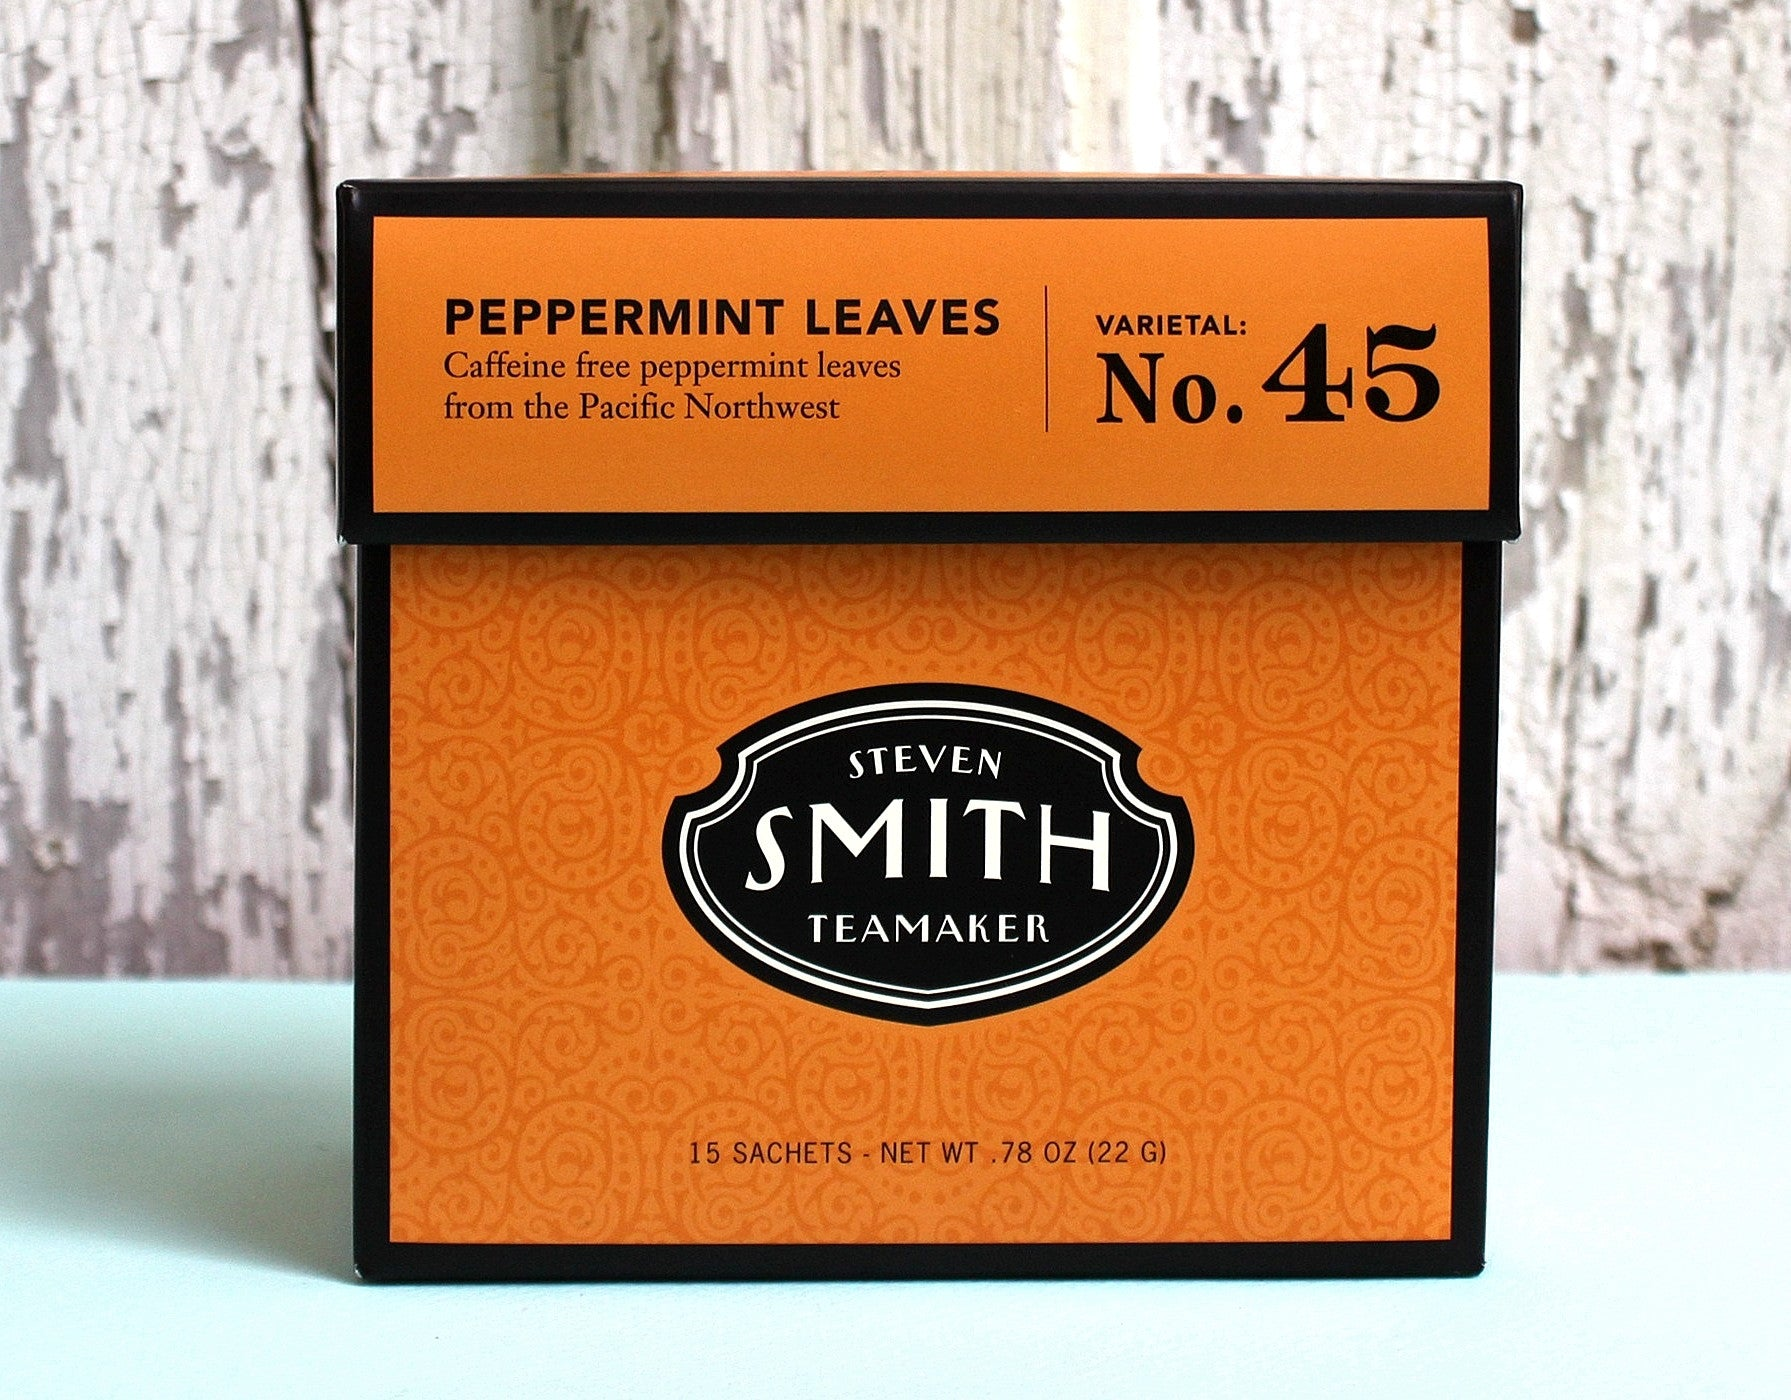 Steven Smith Teamaker Peppermint Leaves